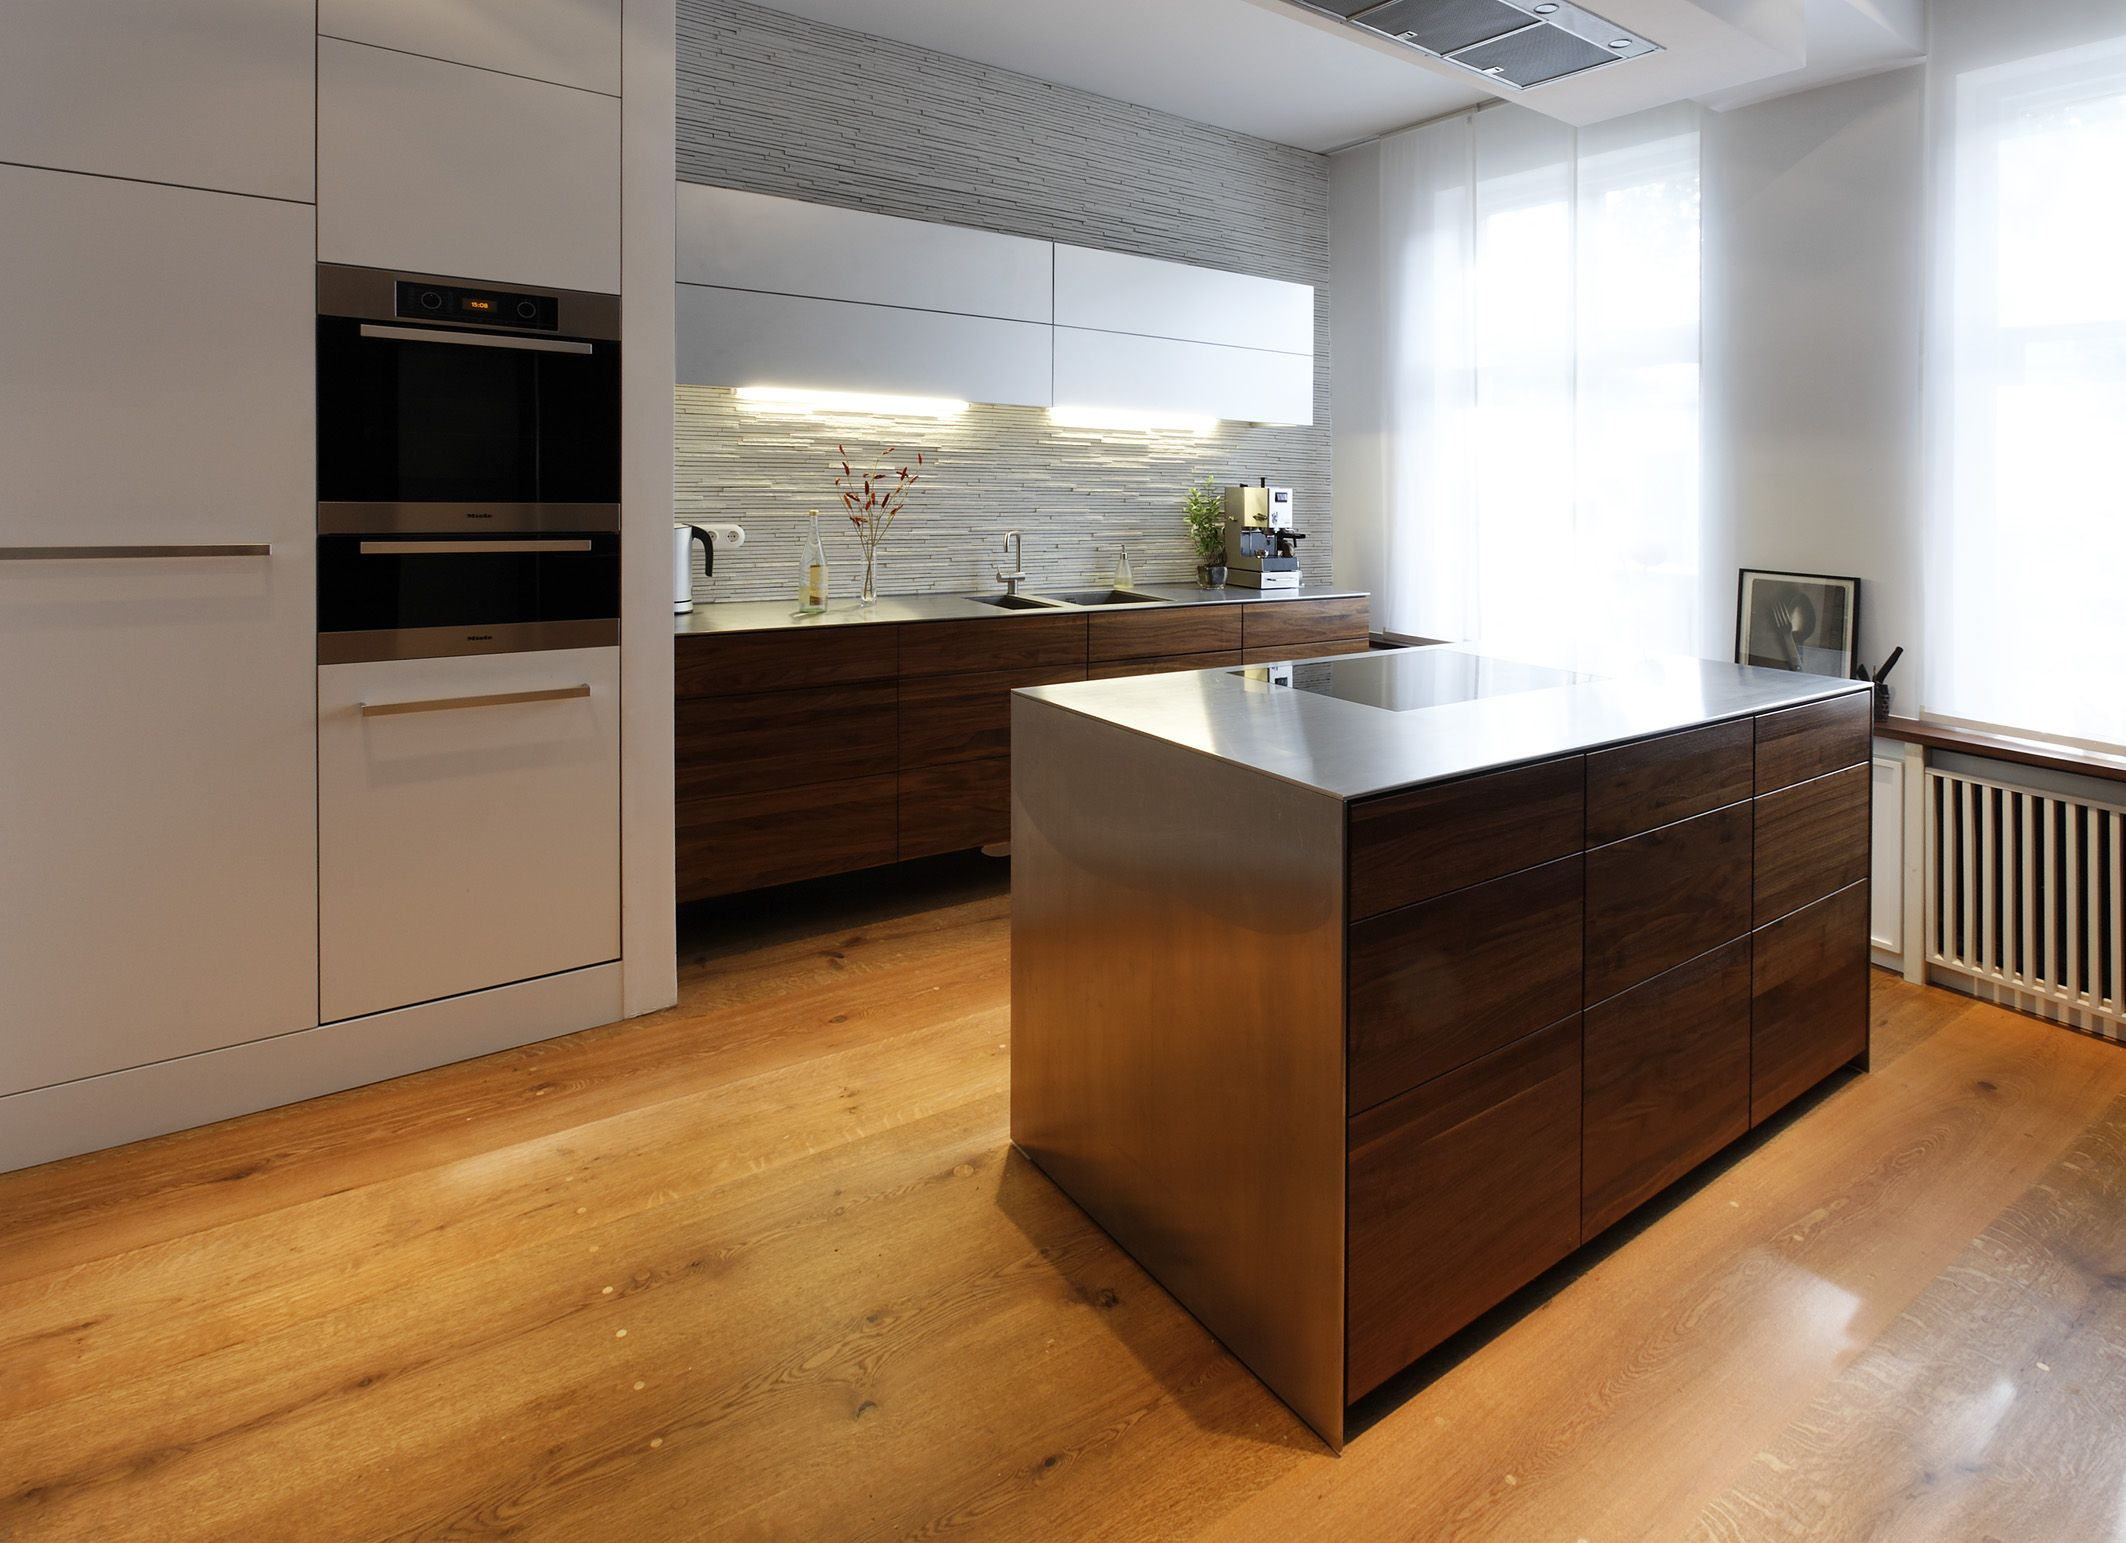 American walnut kitchen with industrial flair thanks to the simple